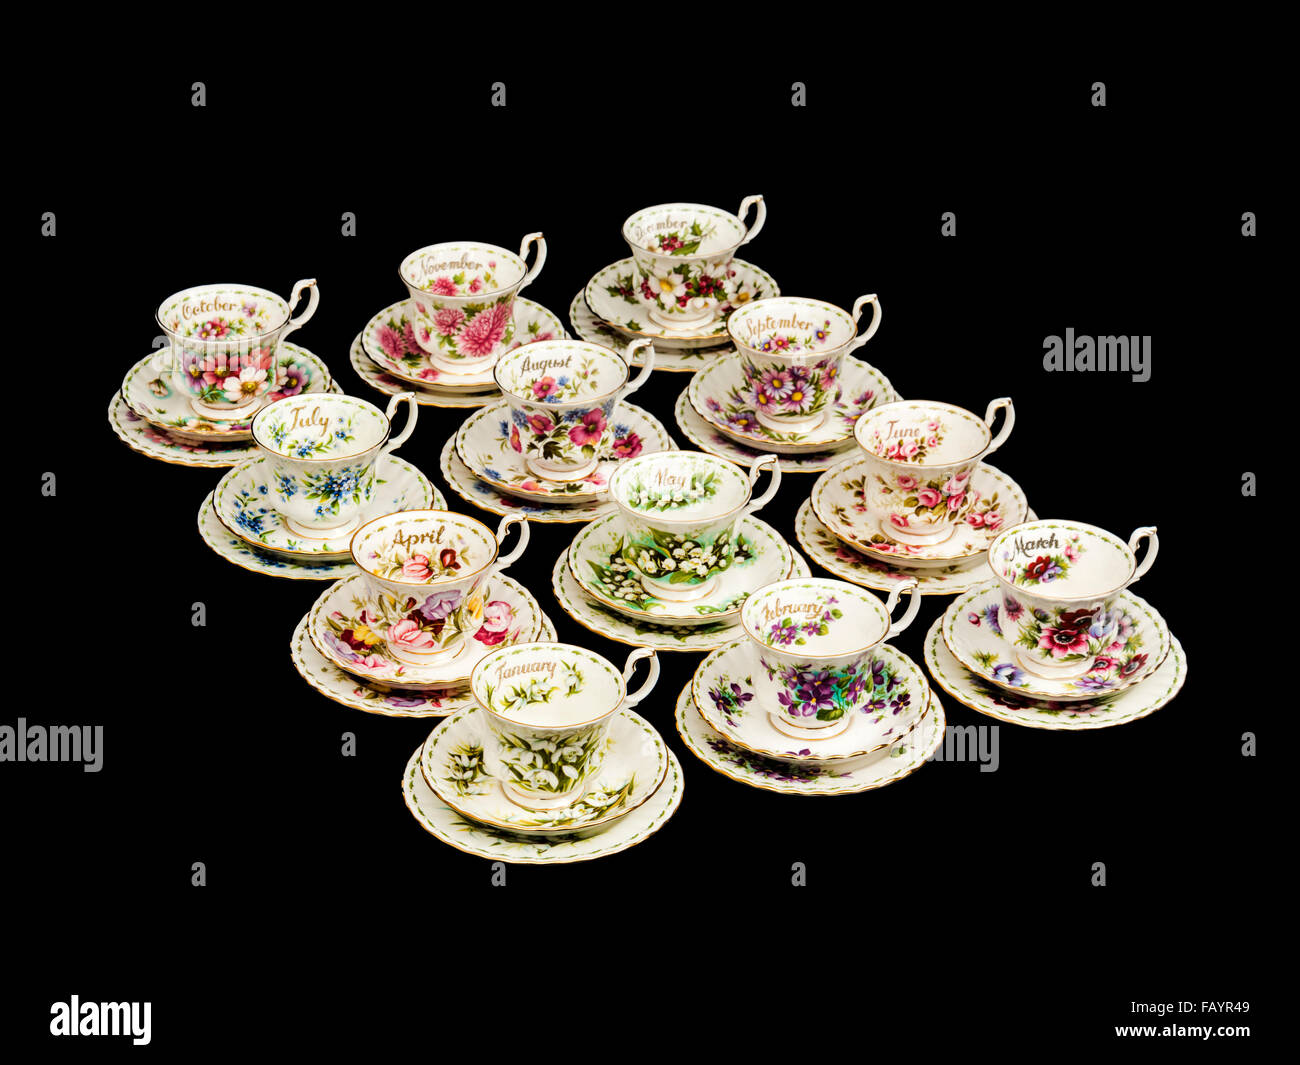 Full set of vintage Royal Albert porcelain 'Flowers of the Month' cups and saucers with side plates (trios) - Stock Image